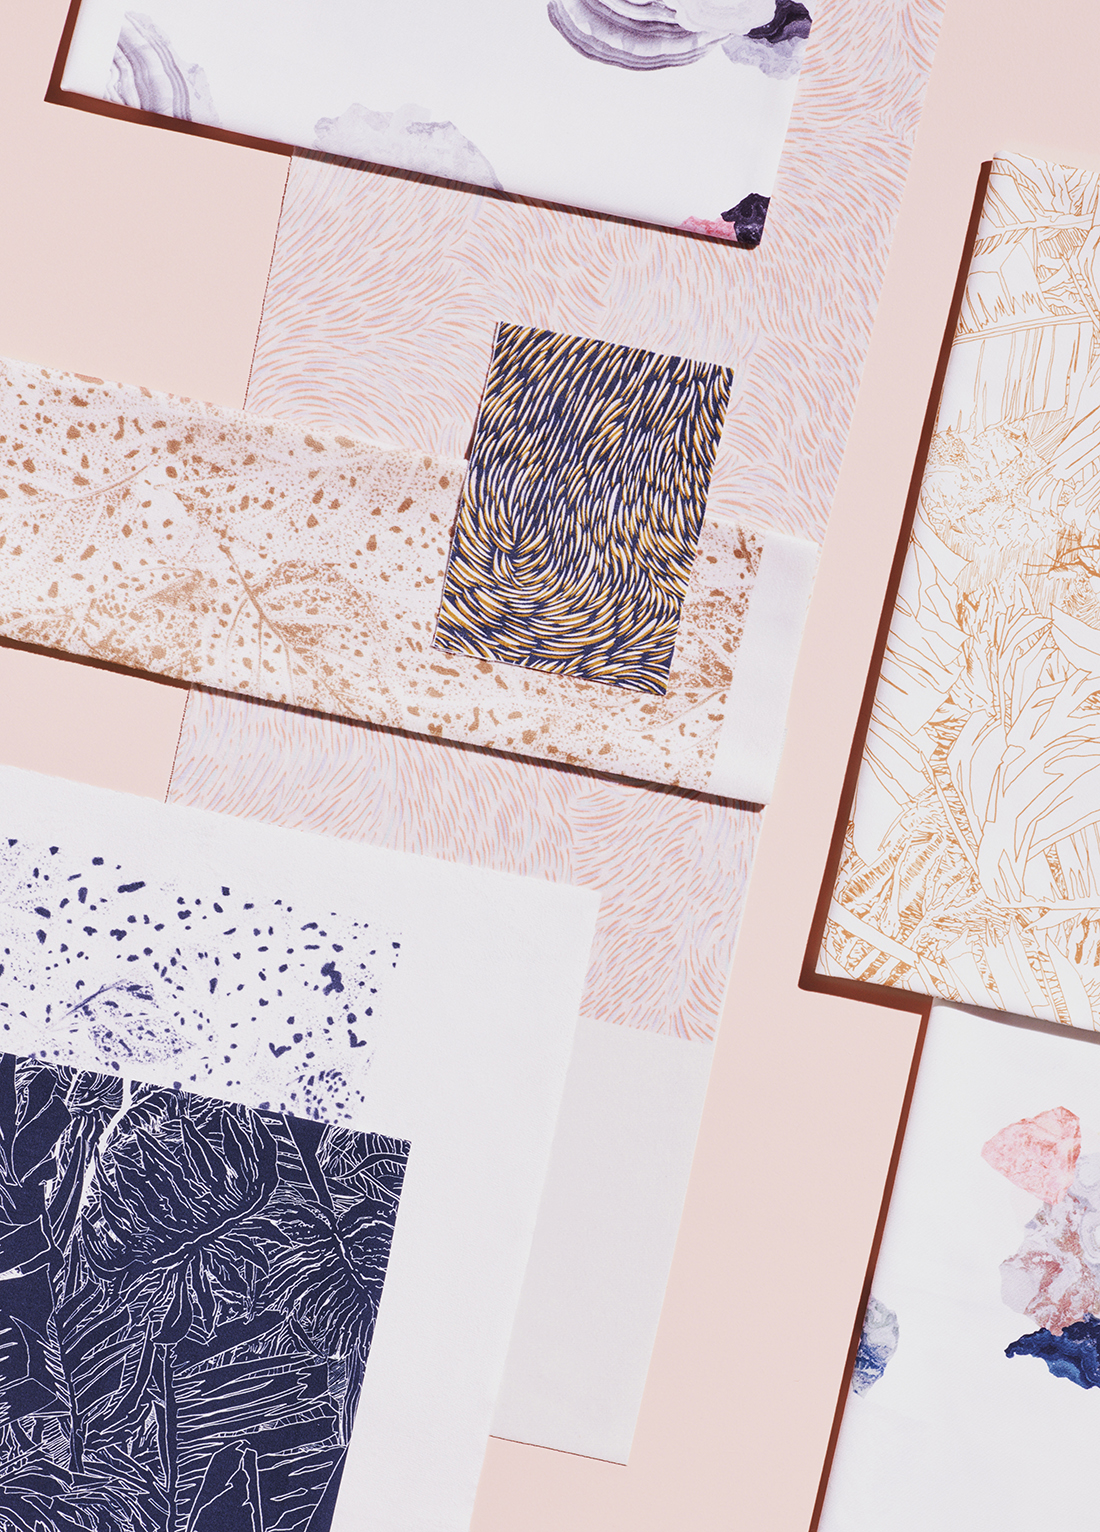 Playful New Wallpaper and Textiles from Petite Friture